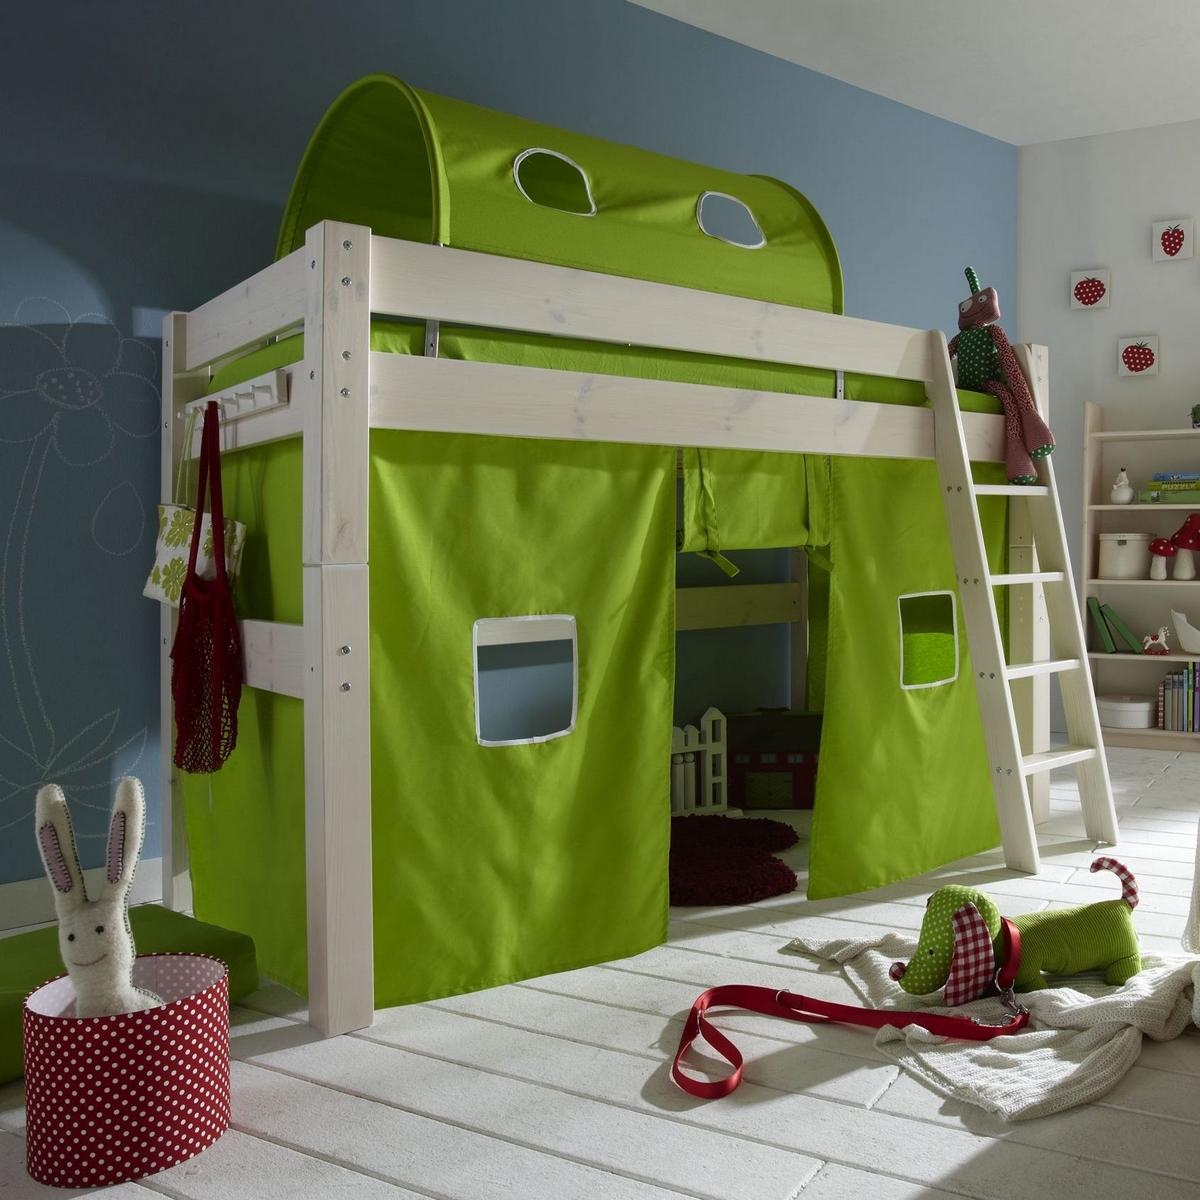 spielbett hochbett tobykids kiefer massiv wei lasiert lime. Black Bedroom Furniture Sets. Home Design Ideas